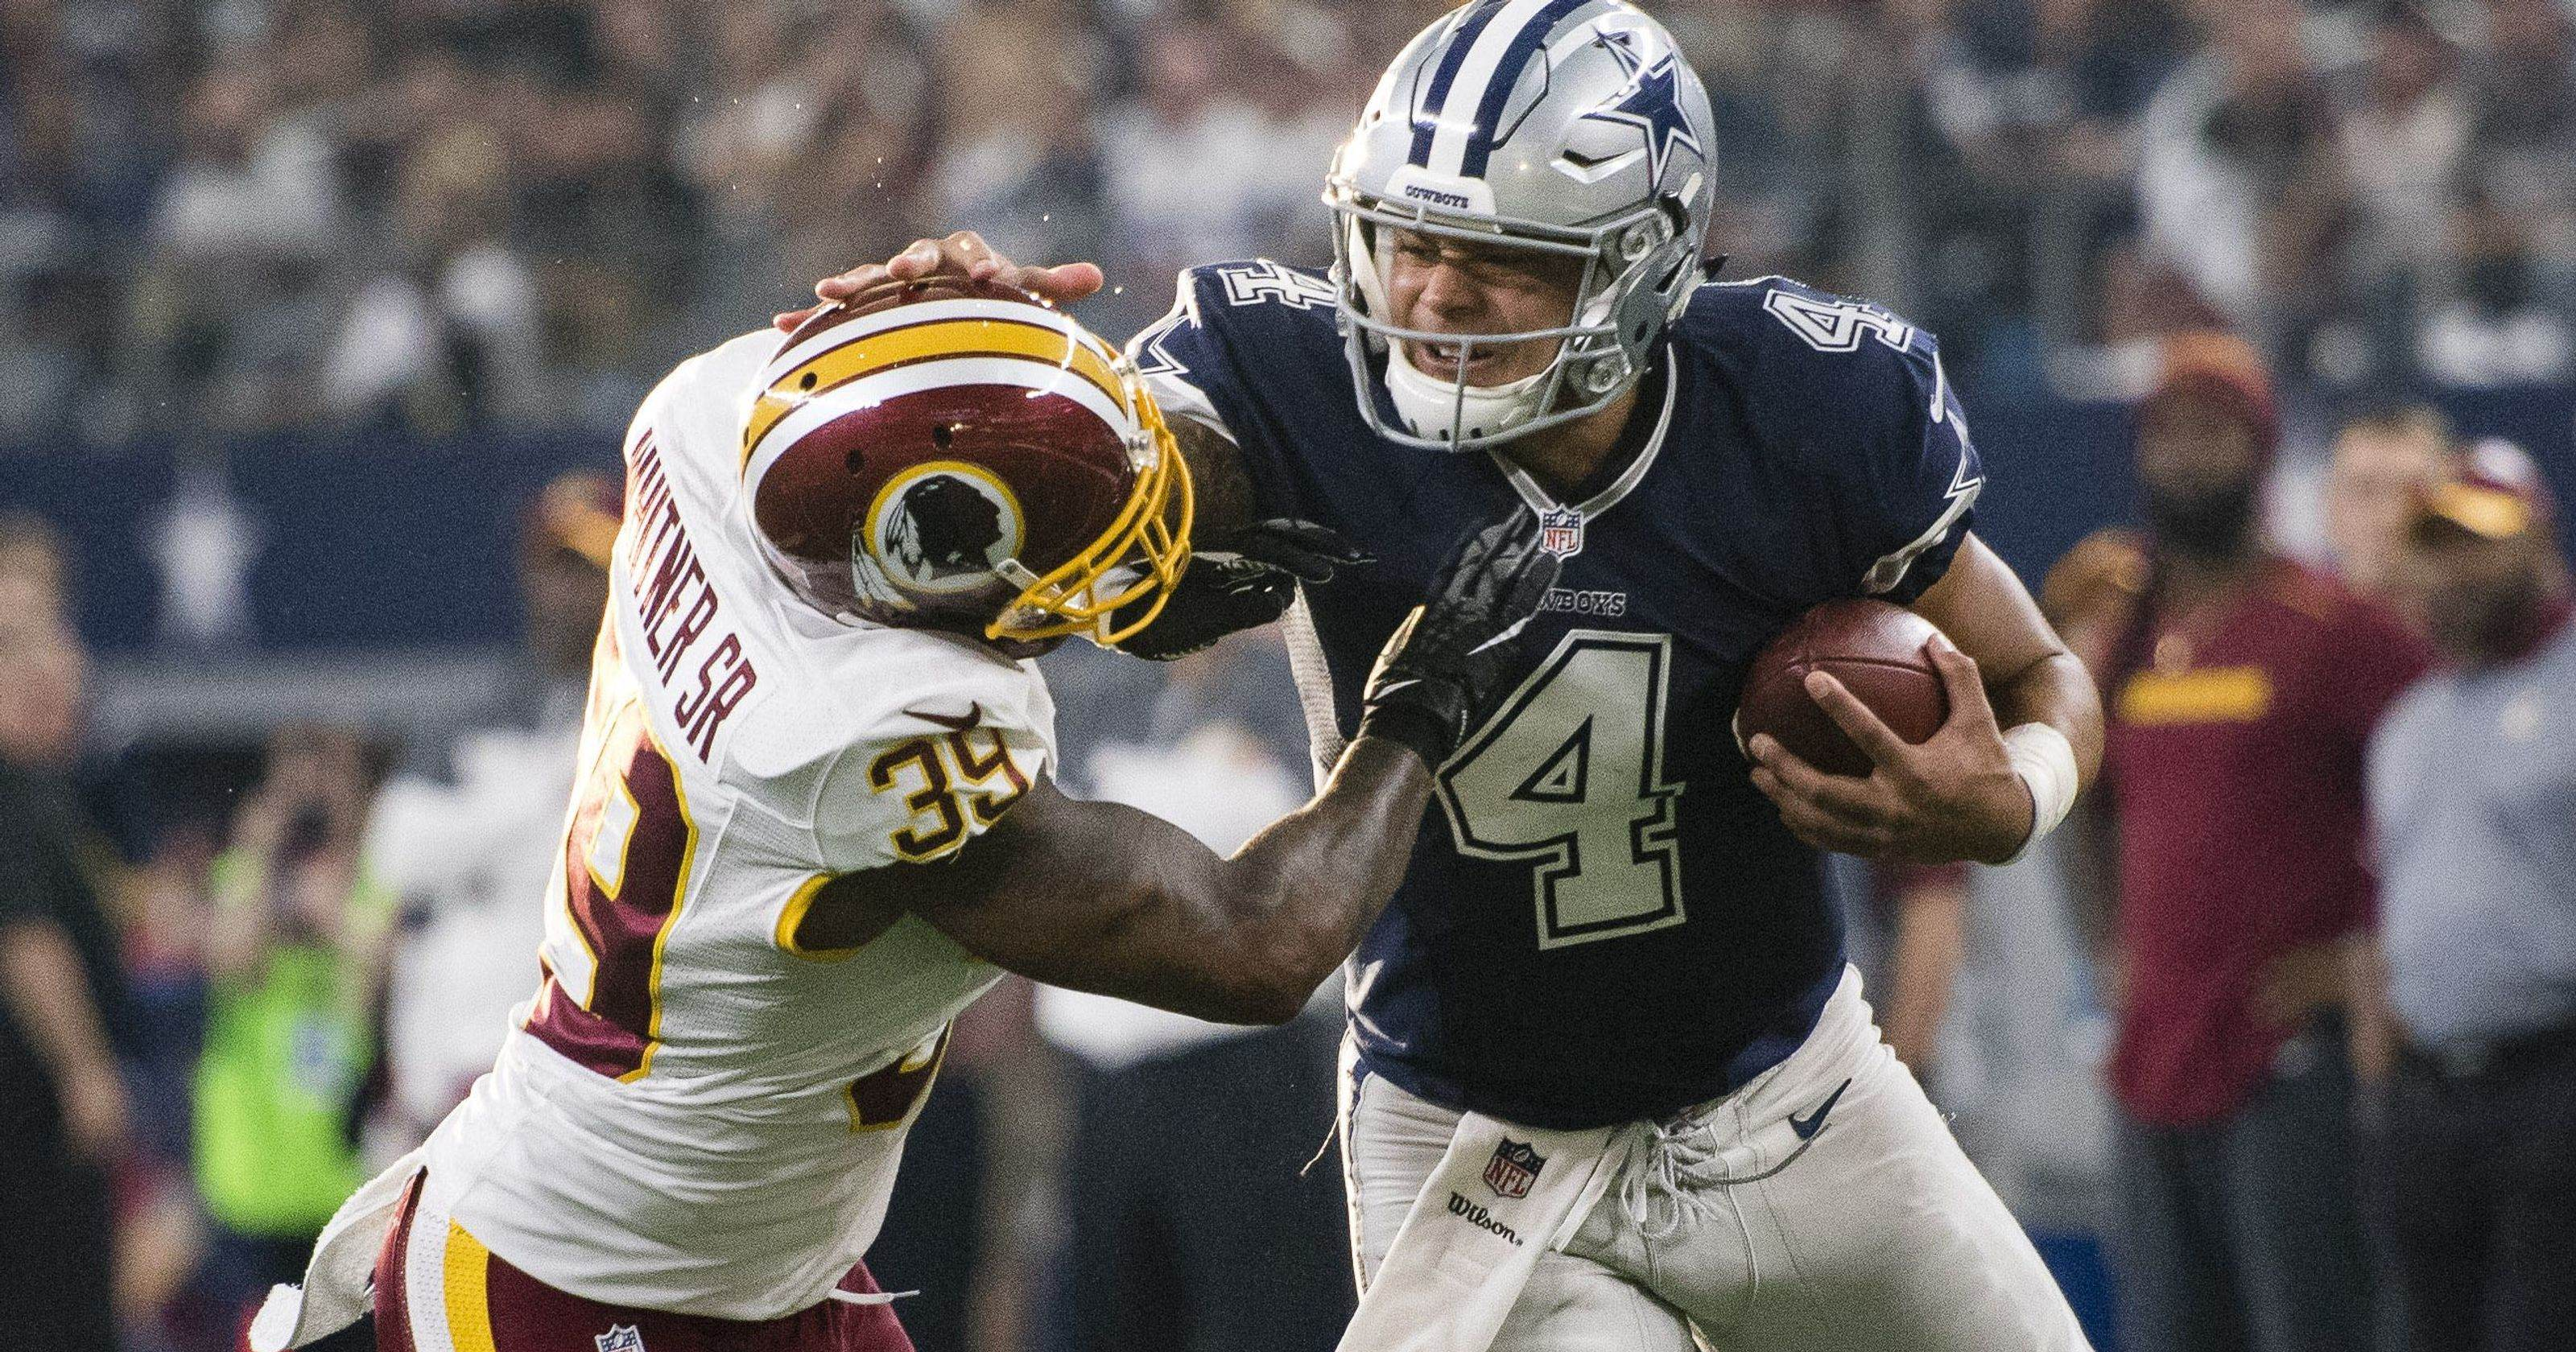 Dallas Cowboys Lose To Washington Redskins 20-17